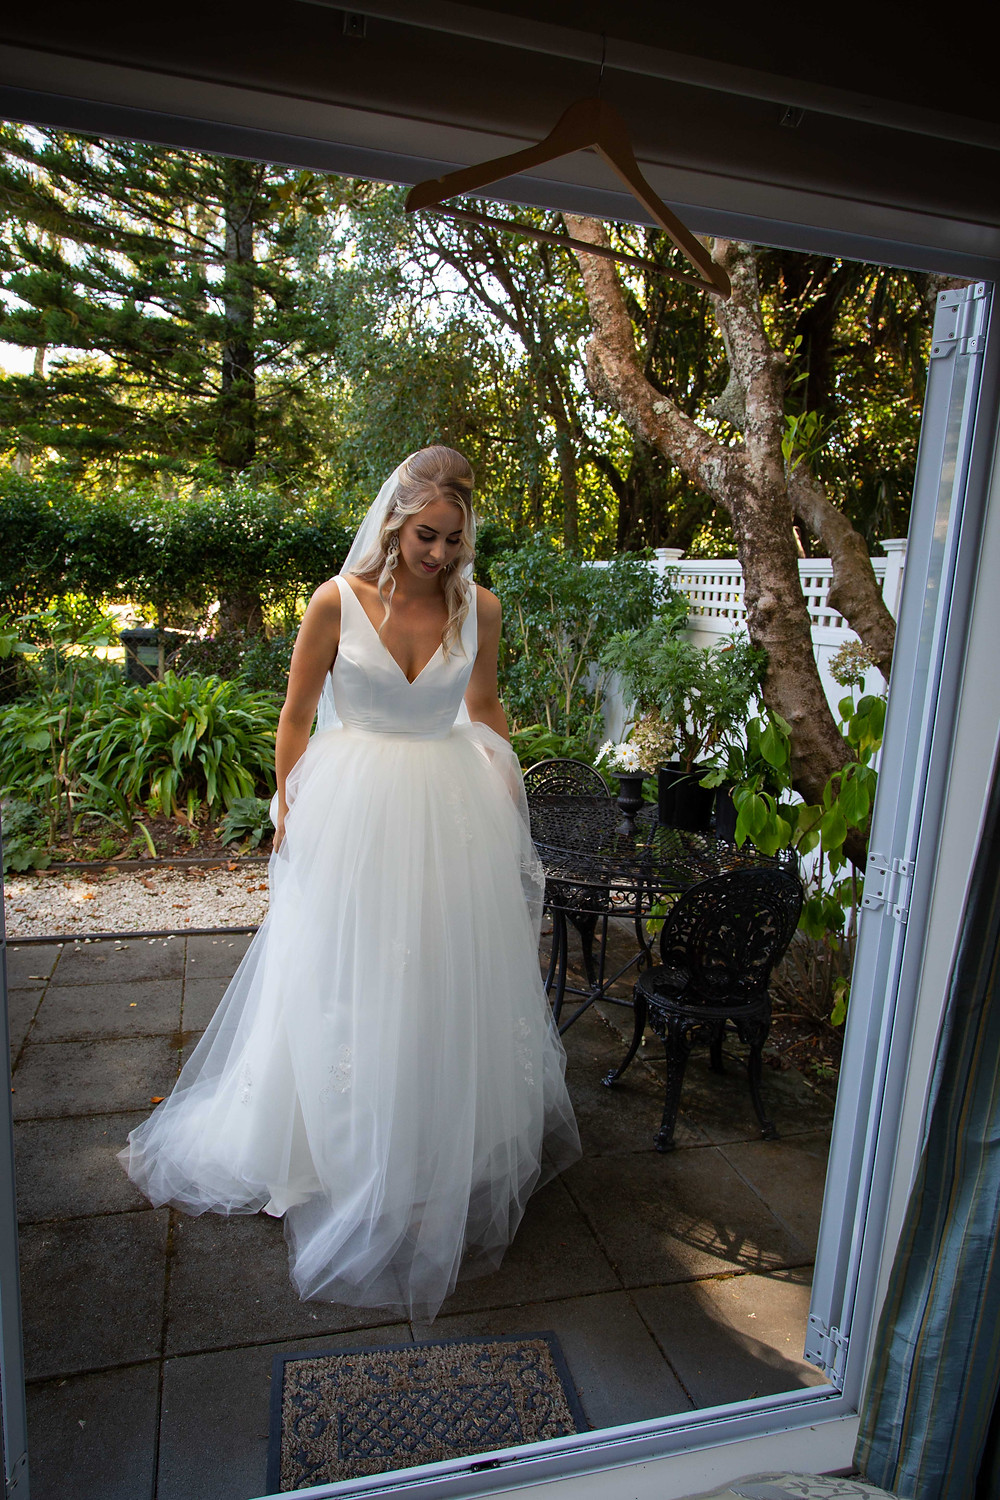 Two Doves Bridal custom made wedding dress, Palmerston North